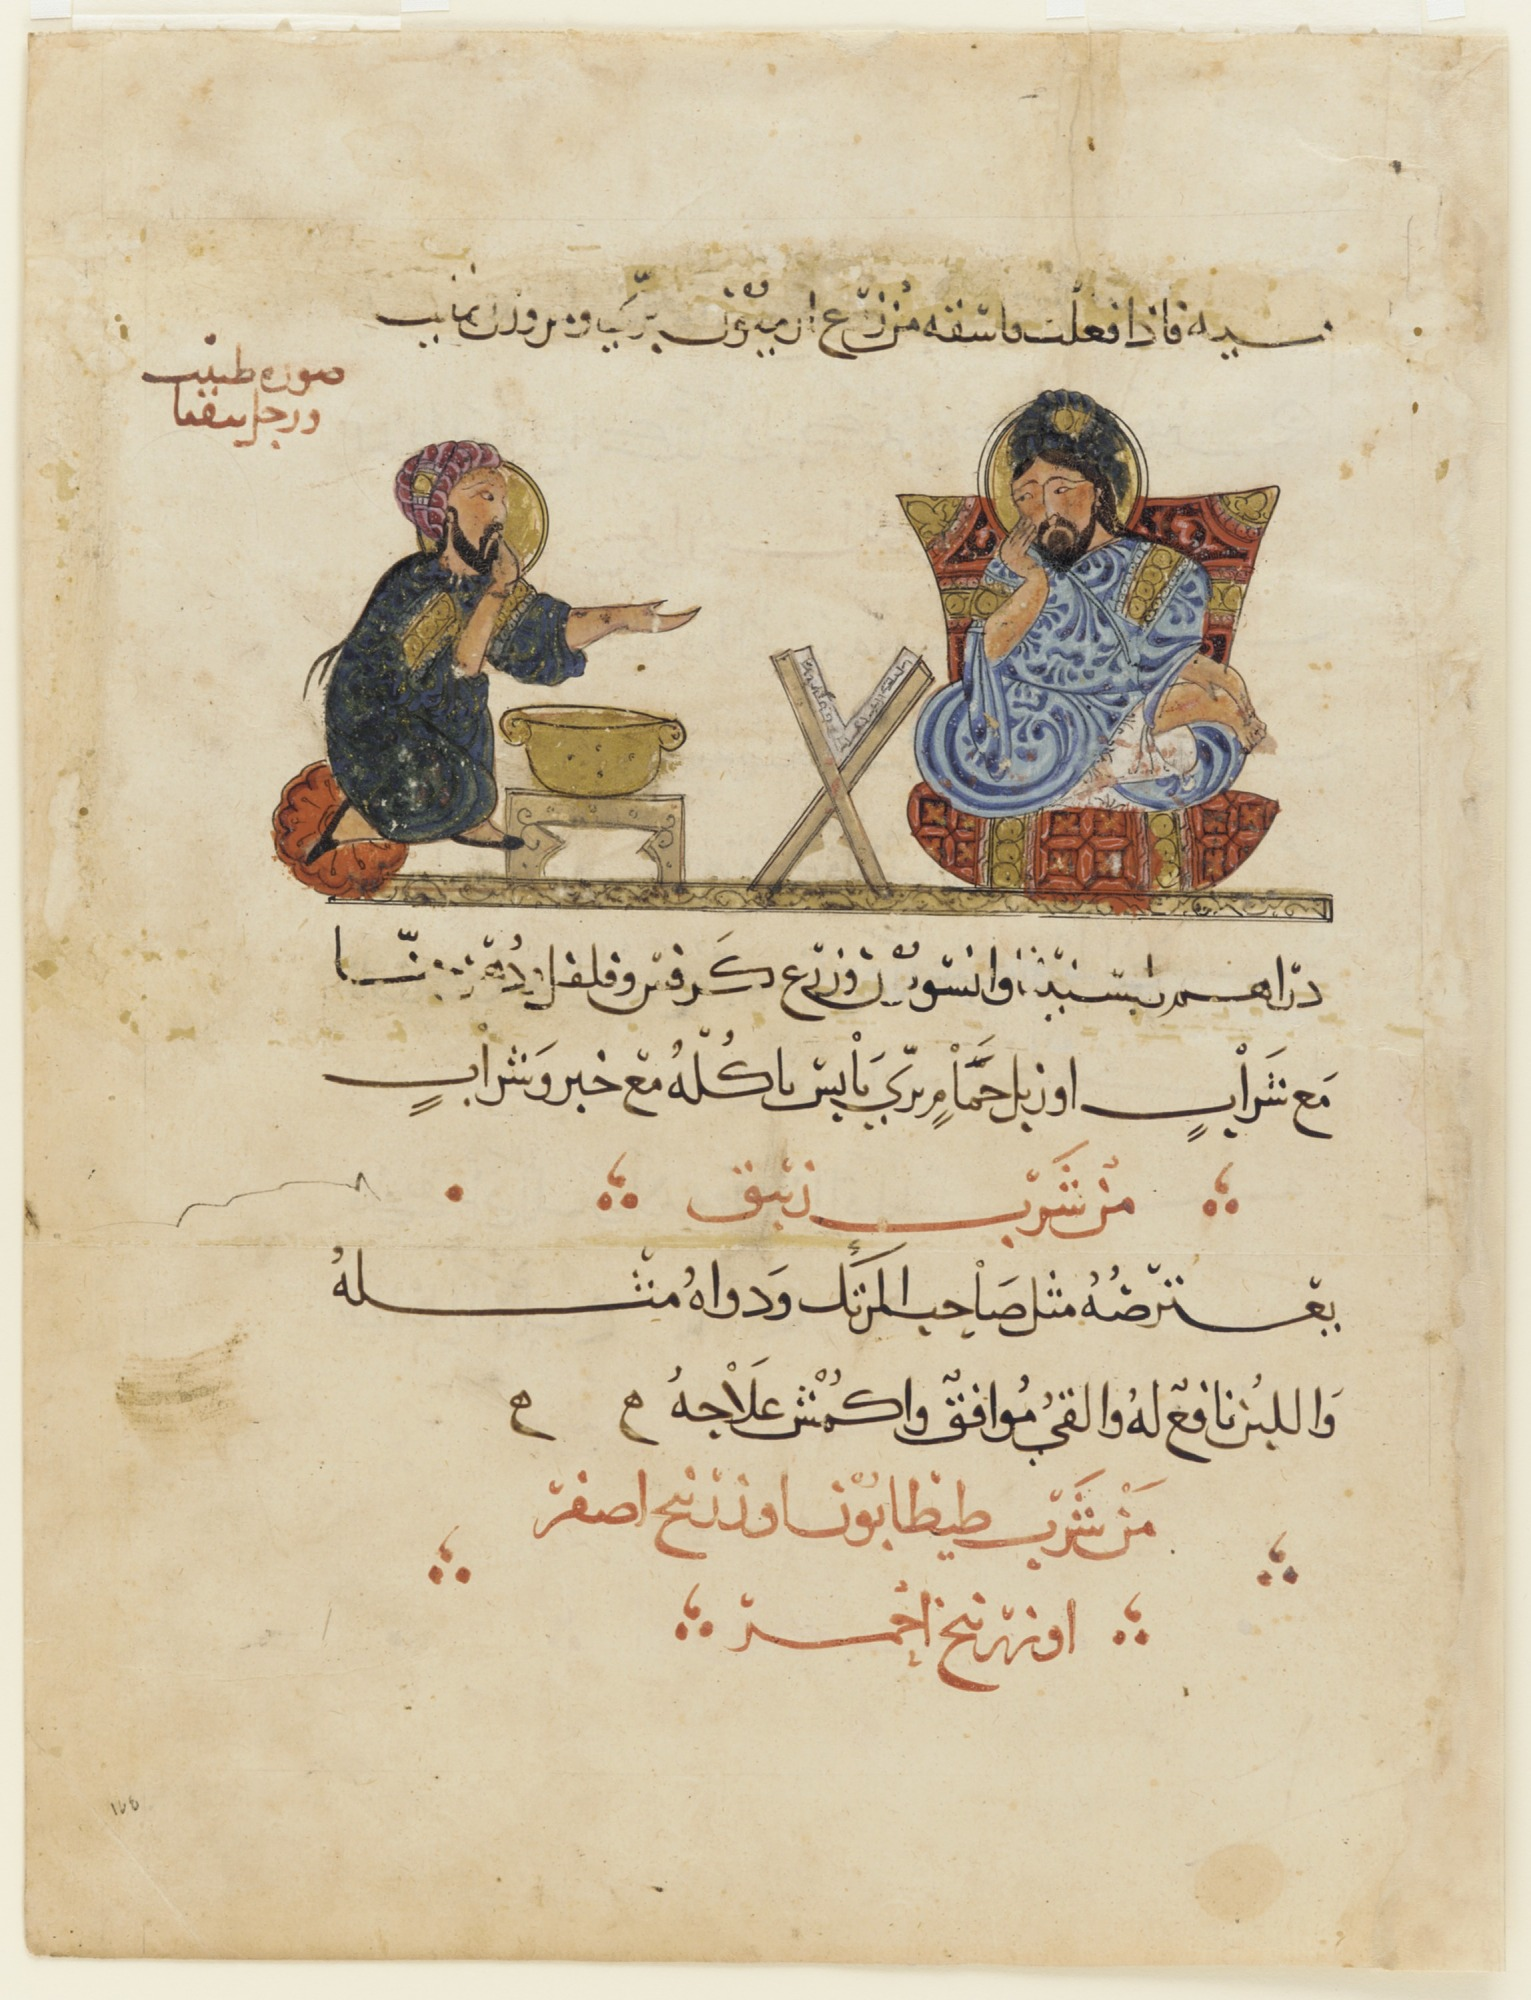 Folio from an Arabic translation of De Materia Medica by Dioscorides (ca. 40-90 C.E.); recto: Physician and an ill man; verso: text